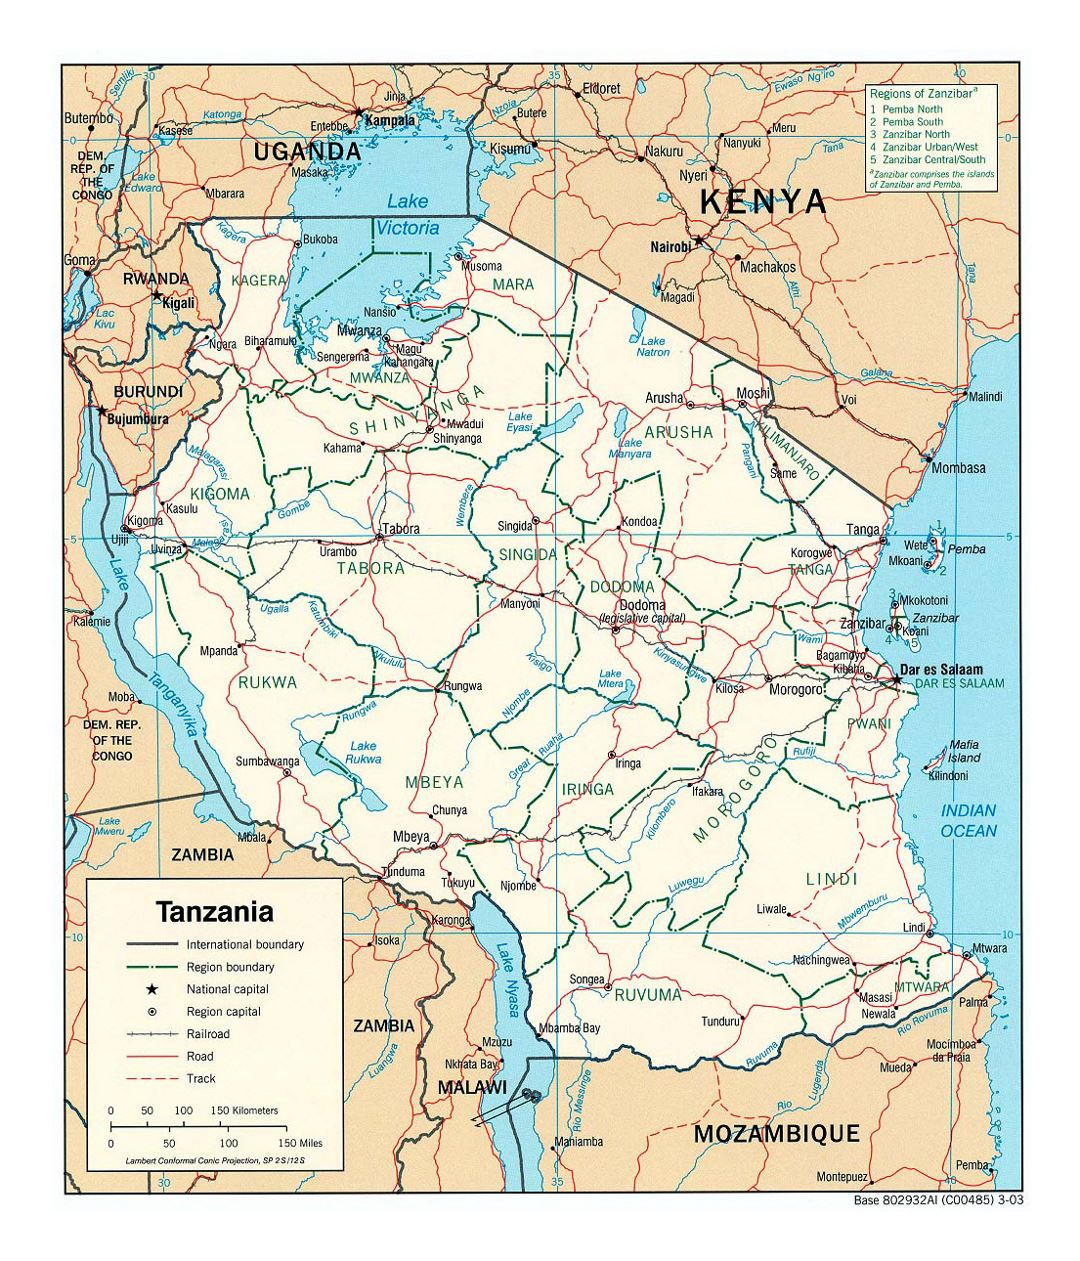 Detailed political and administrative map of Tanzania with roads, railroads and major cities - 2003